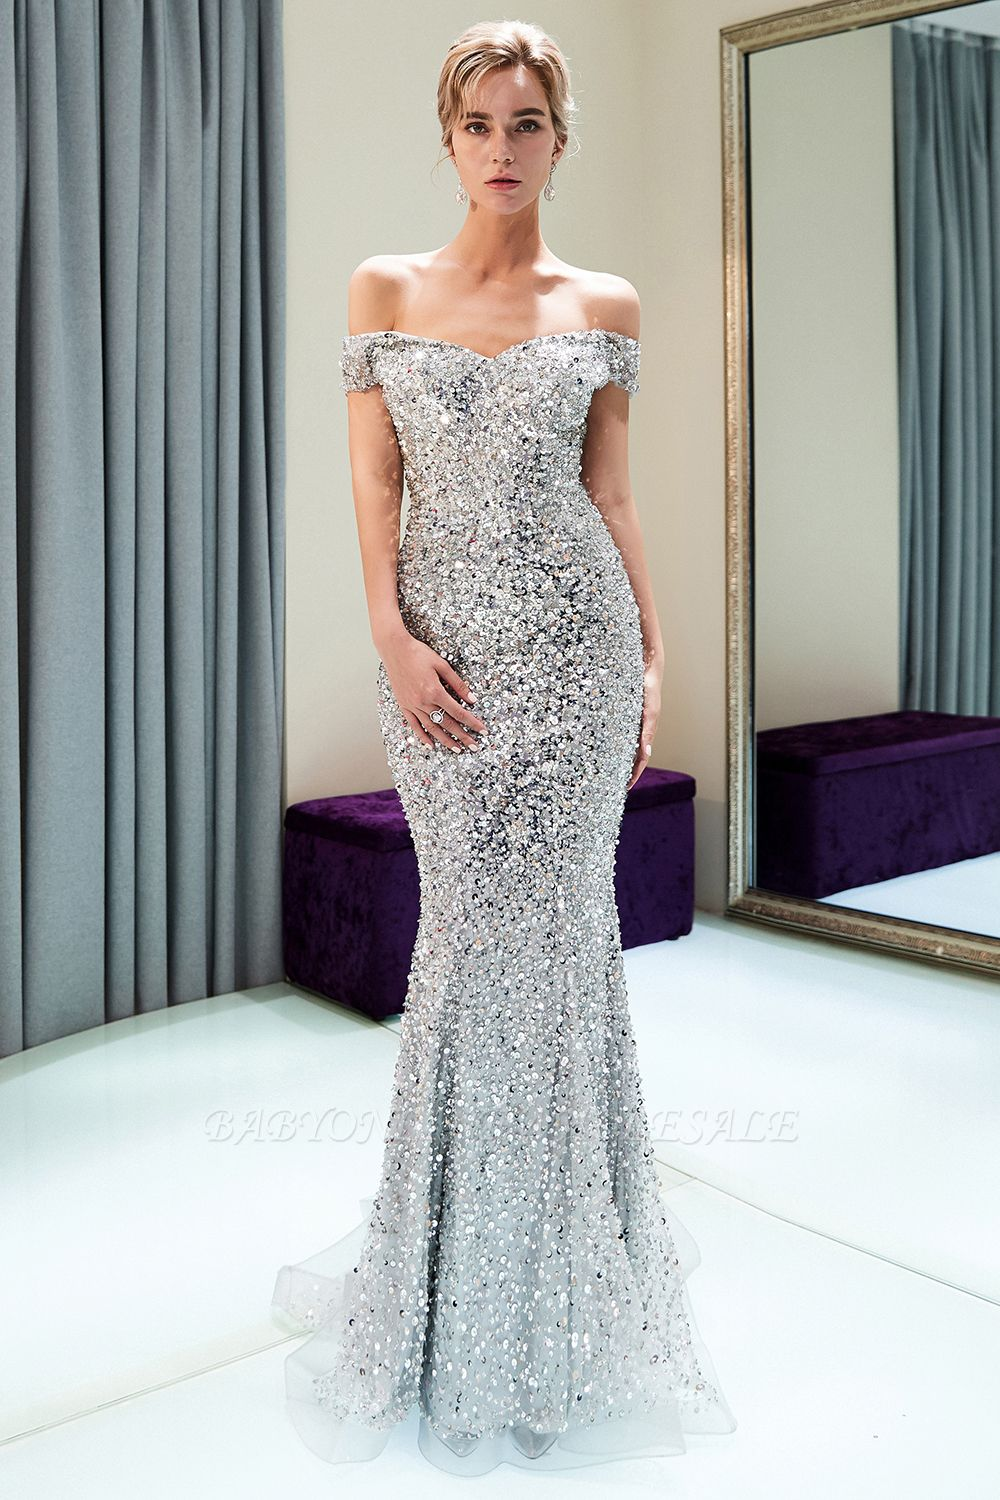 ea94ecaf113 Silver Sequin Long Evening Gown - Data Dynamic AG